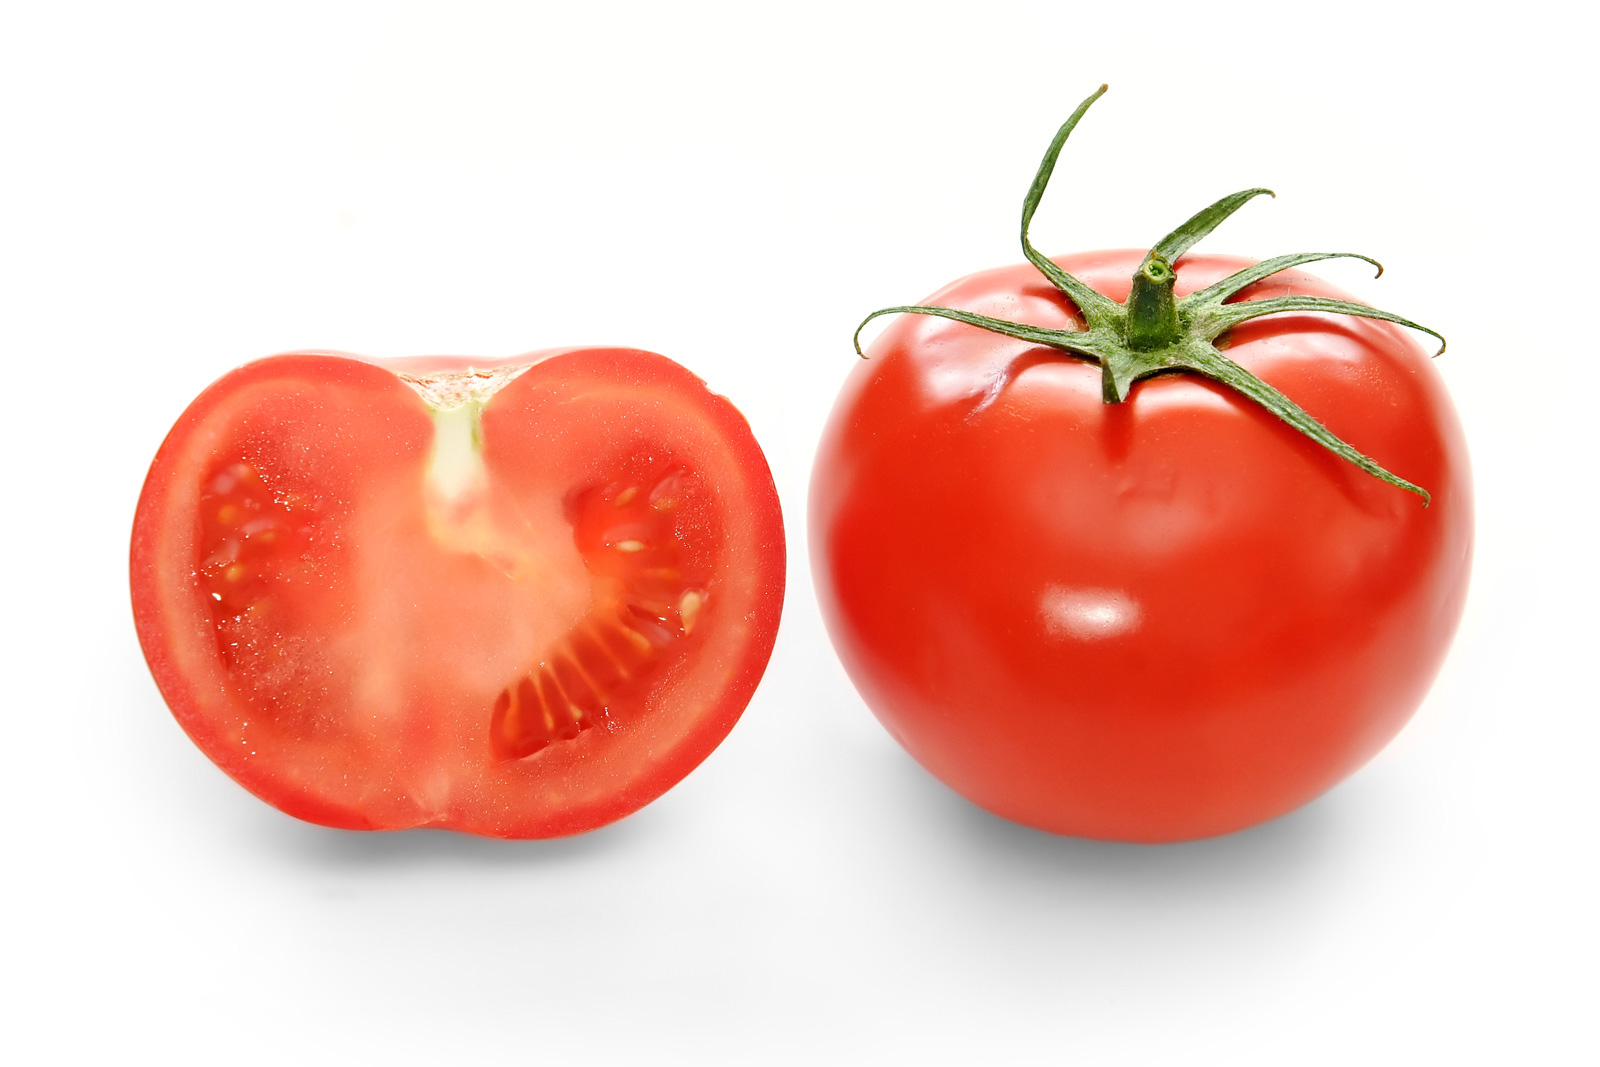 https://upload.wikimedia.org/wikipedia/commons/8/88/Bright_red_tomato_and_cross_section02.jpg